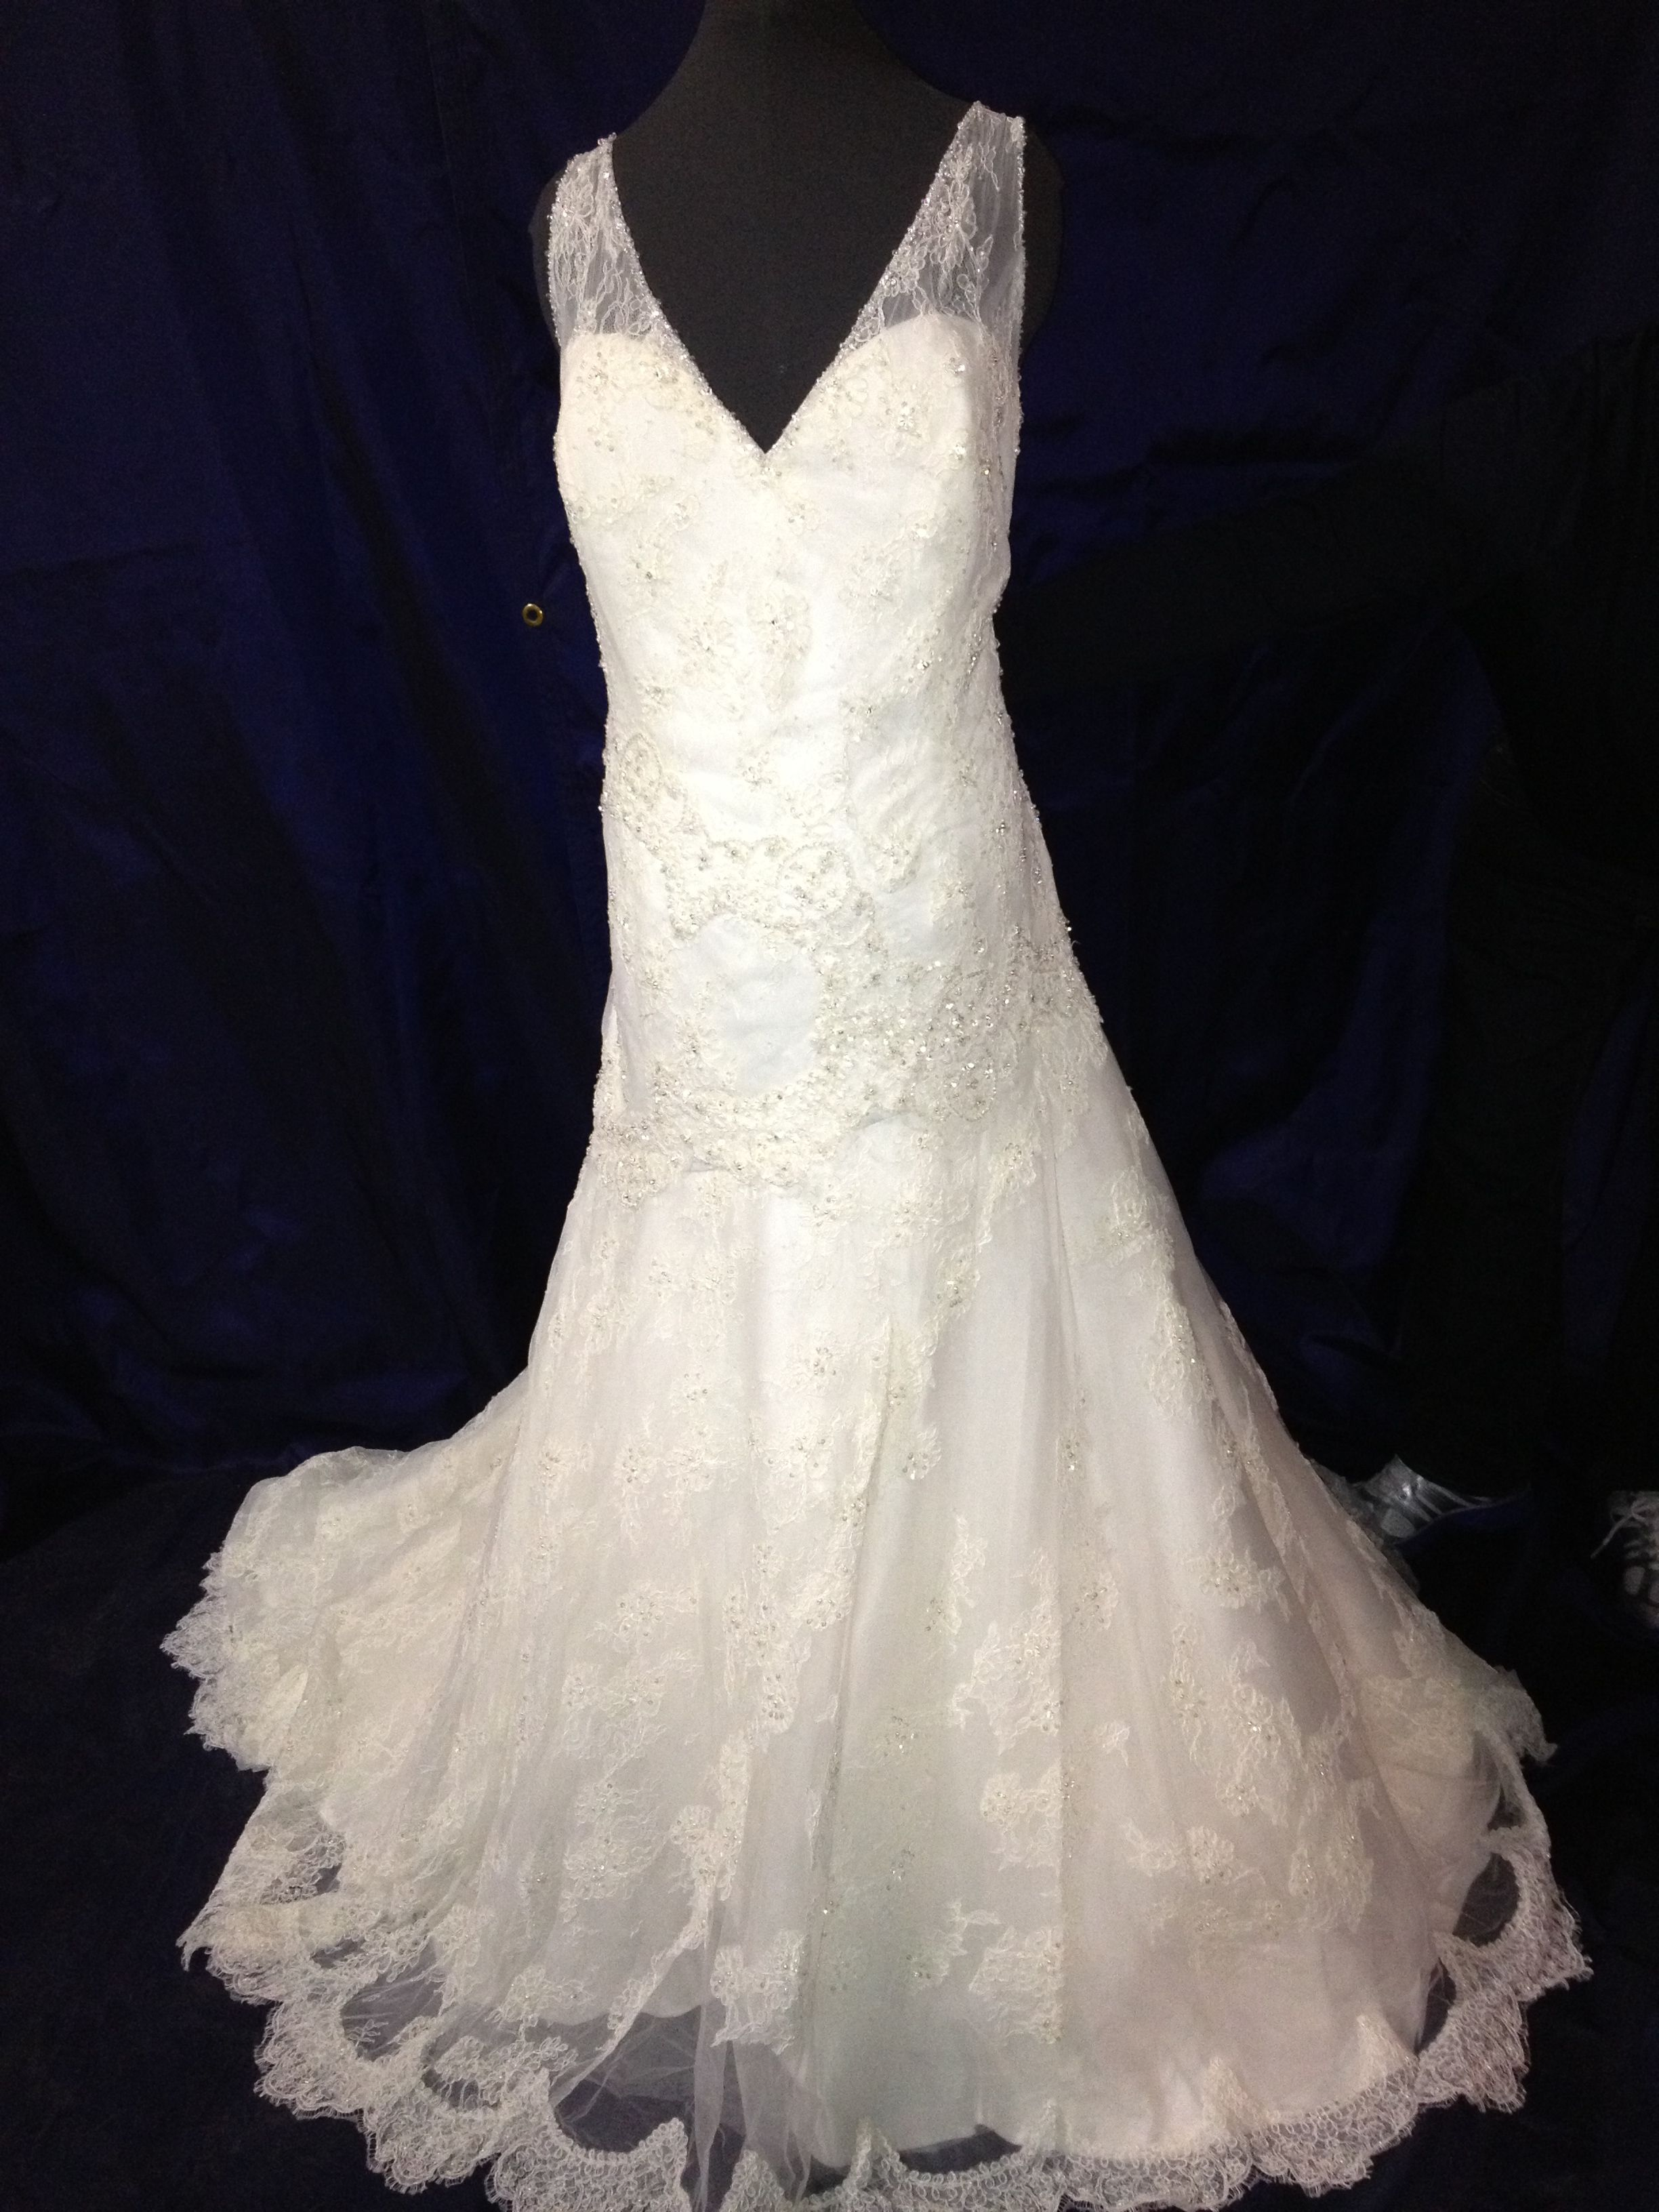 Goodwills bridal sale is set for tomorrow feb 9th at 9